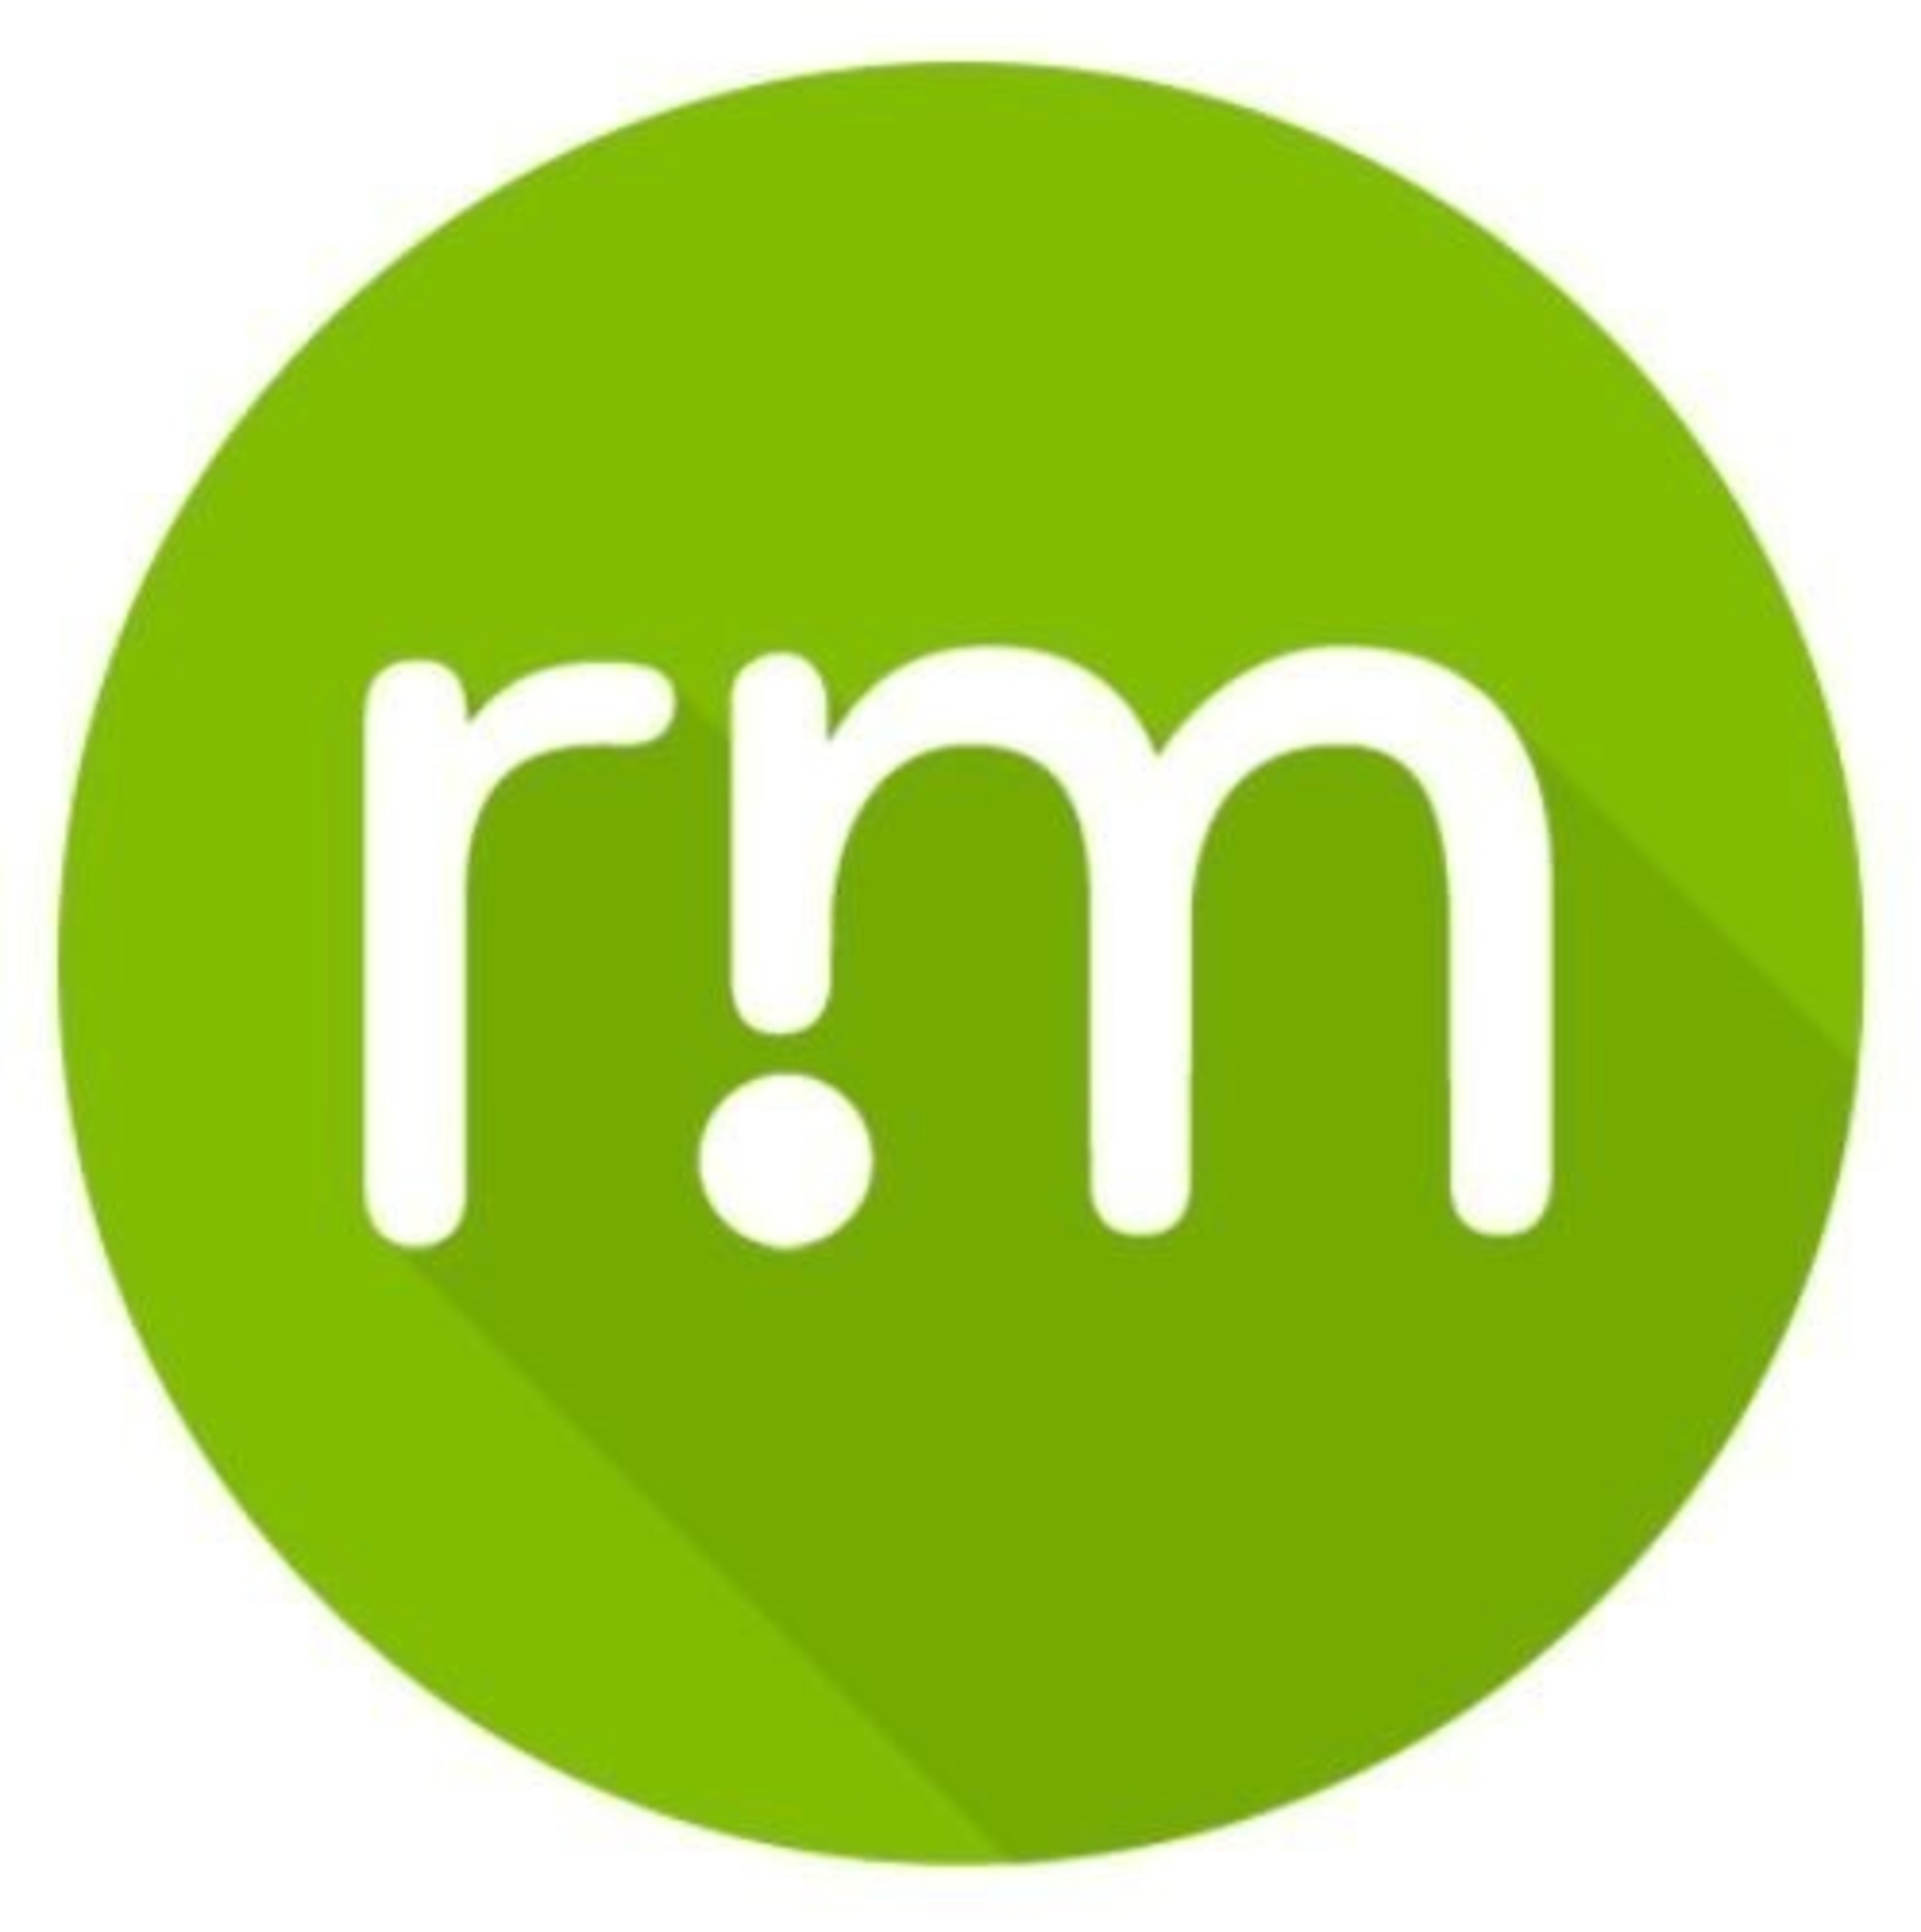 RealMatch Earns Deloitte's Technology Fast 500™ Award for Second Consecutive Year